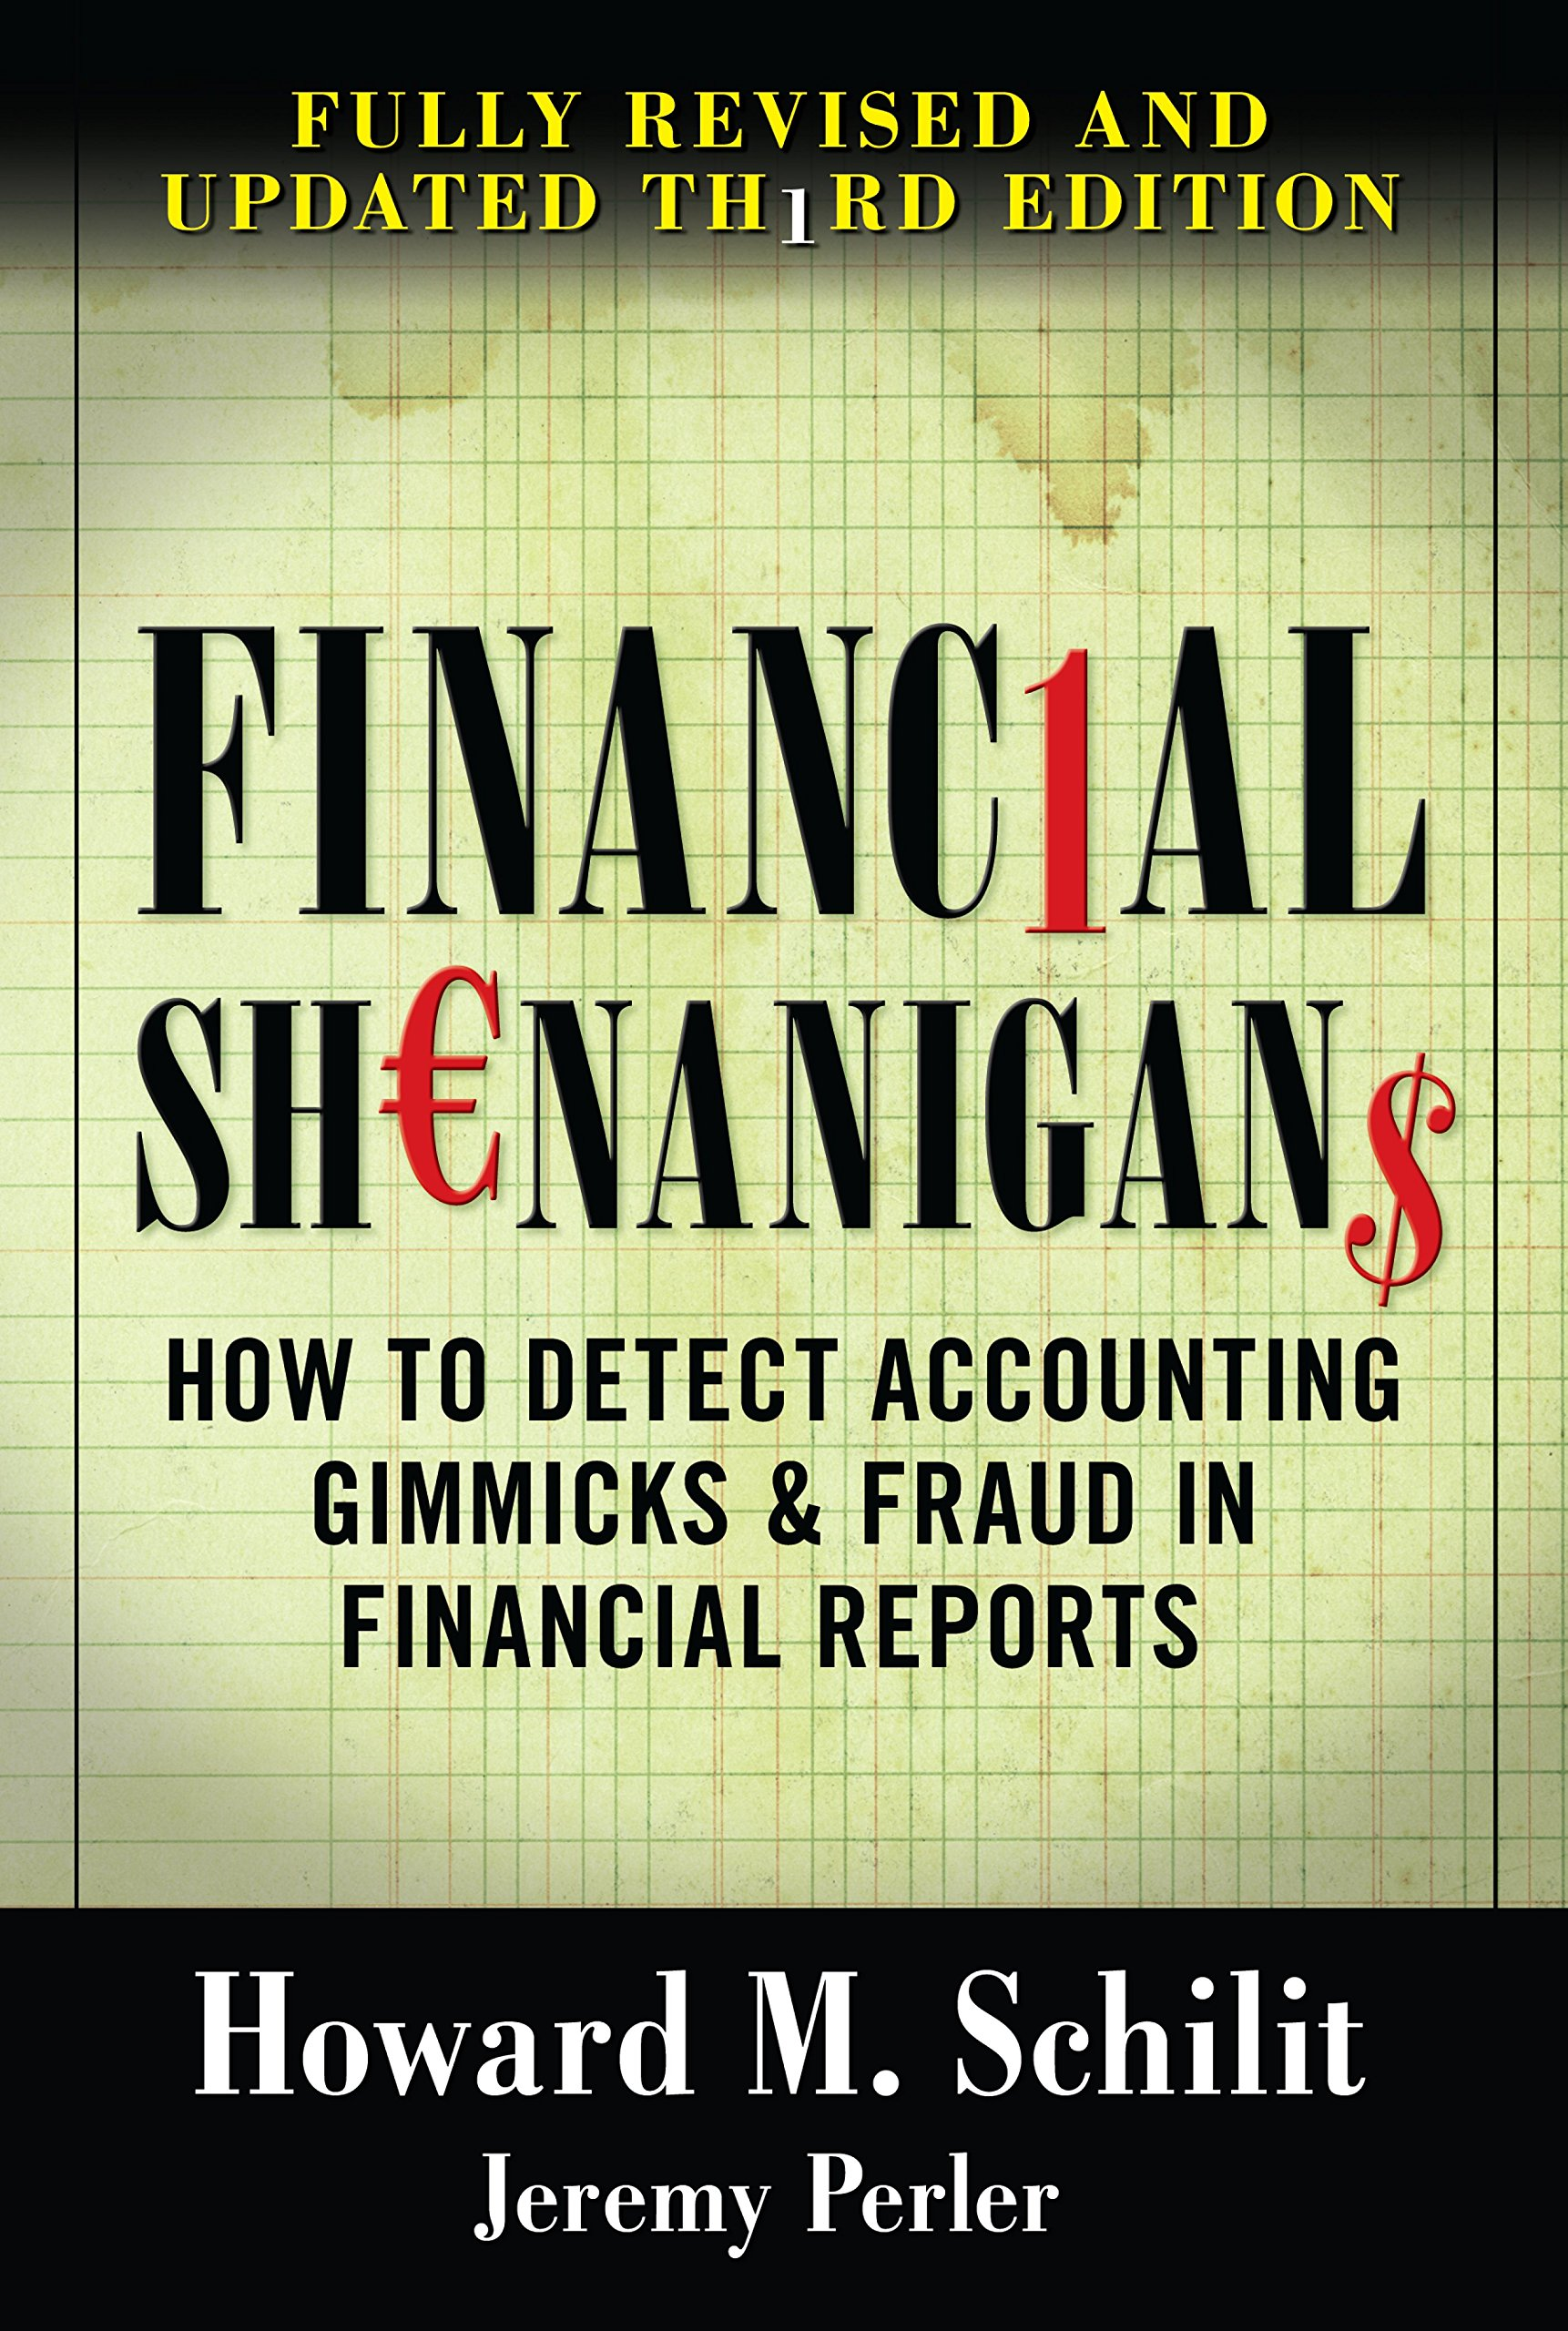 Buy Financial Shenanigans: How to Detect Accounting Gimmicks & Fraud in Financial  Reports, Third Edition Book Online at Low Prices in India | Financial ...